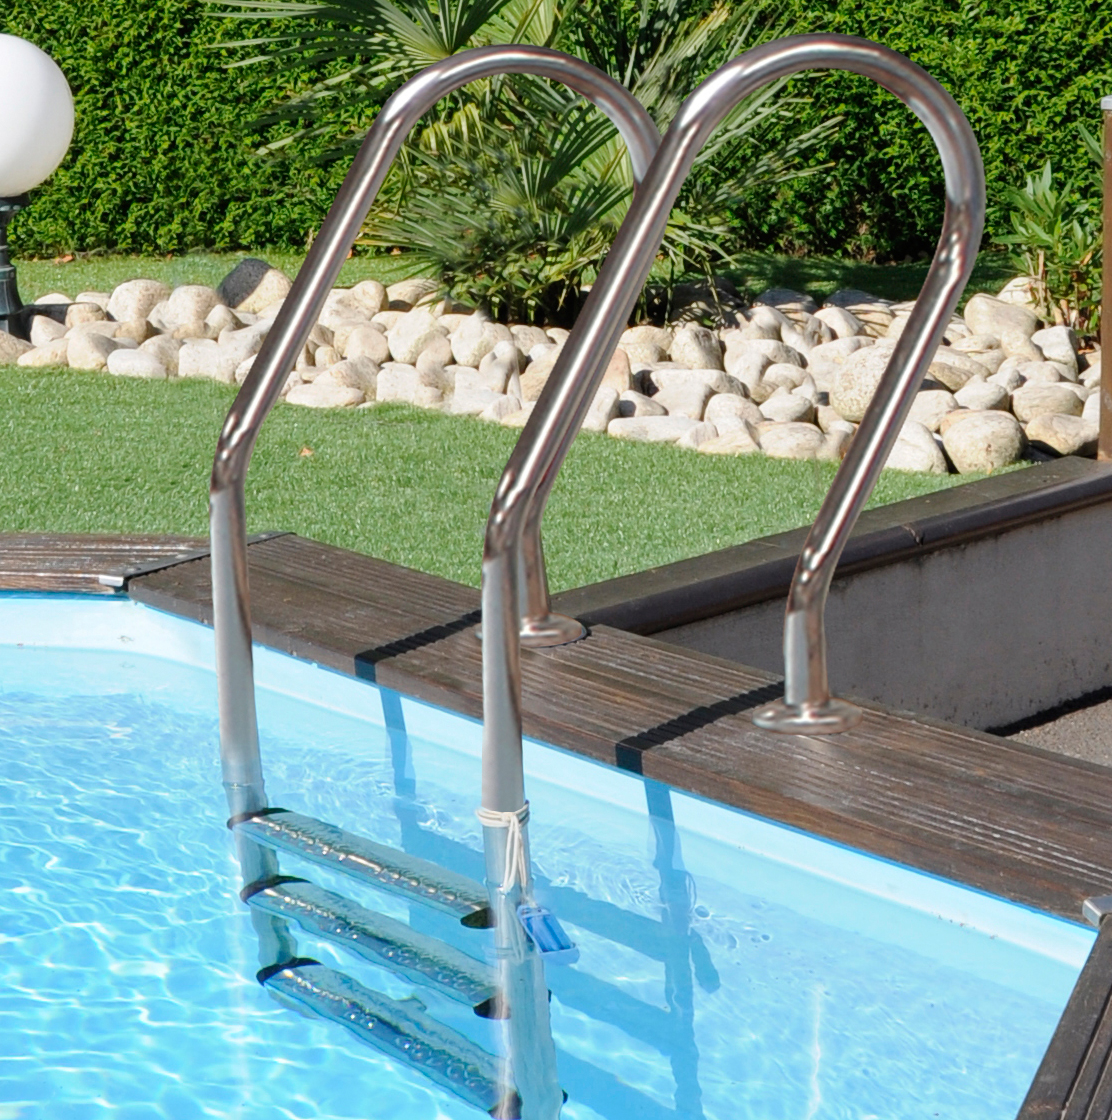 Escalera para piscina de madera inox - Piscinas Garrido - Estufas de ...